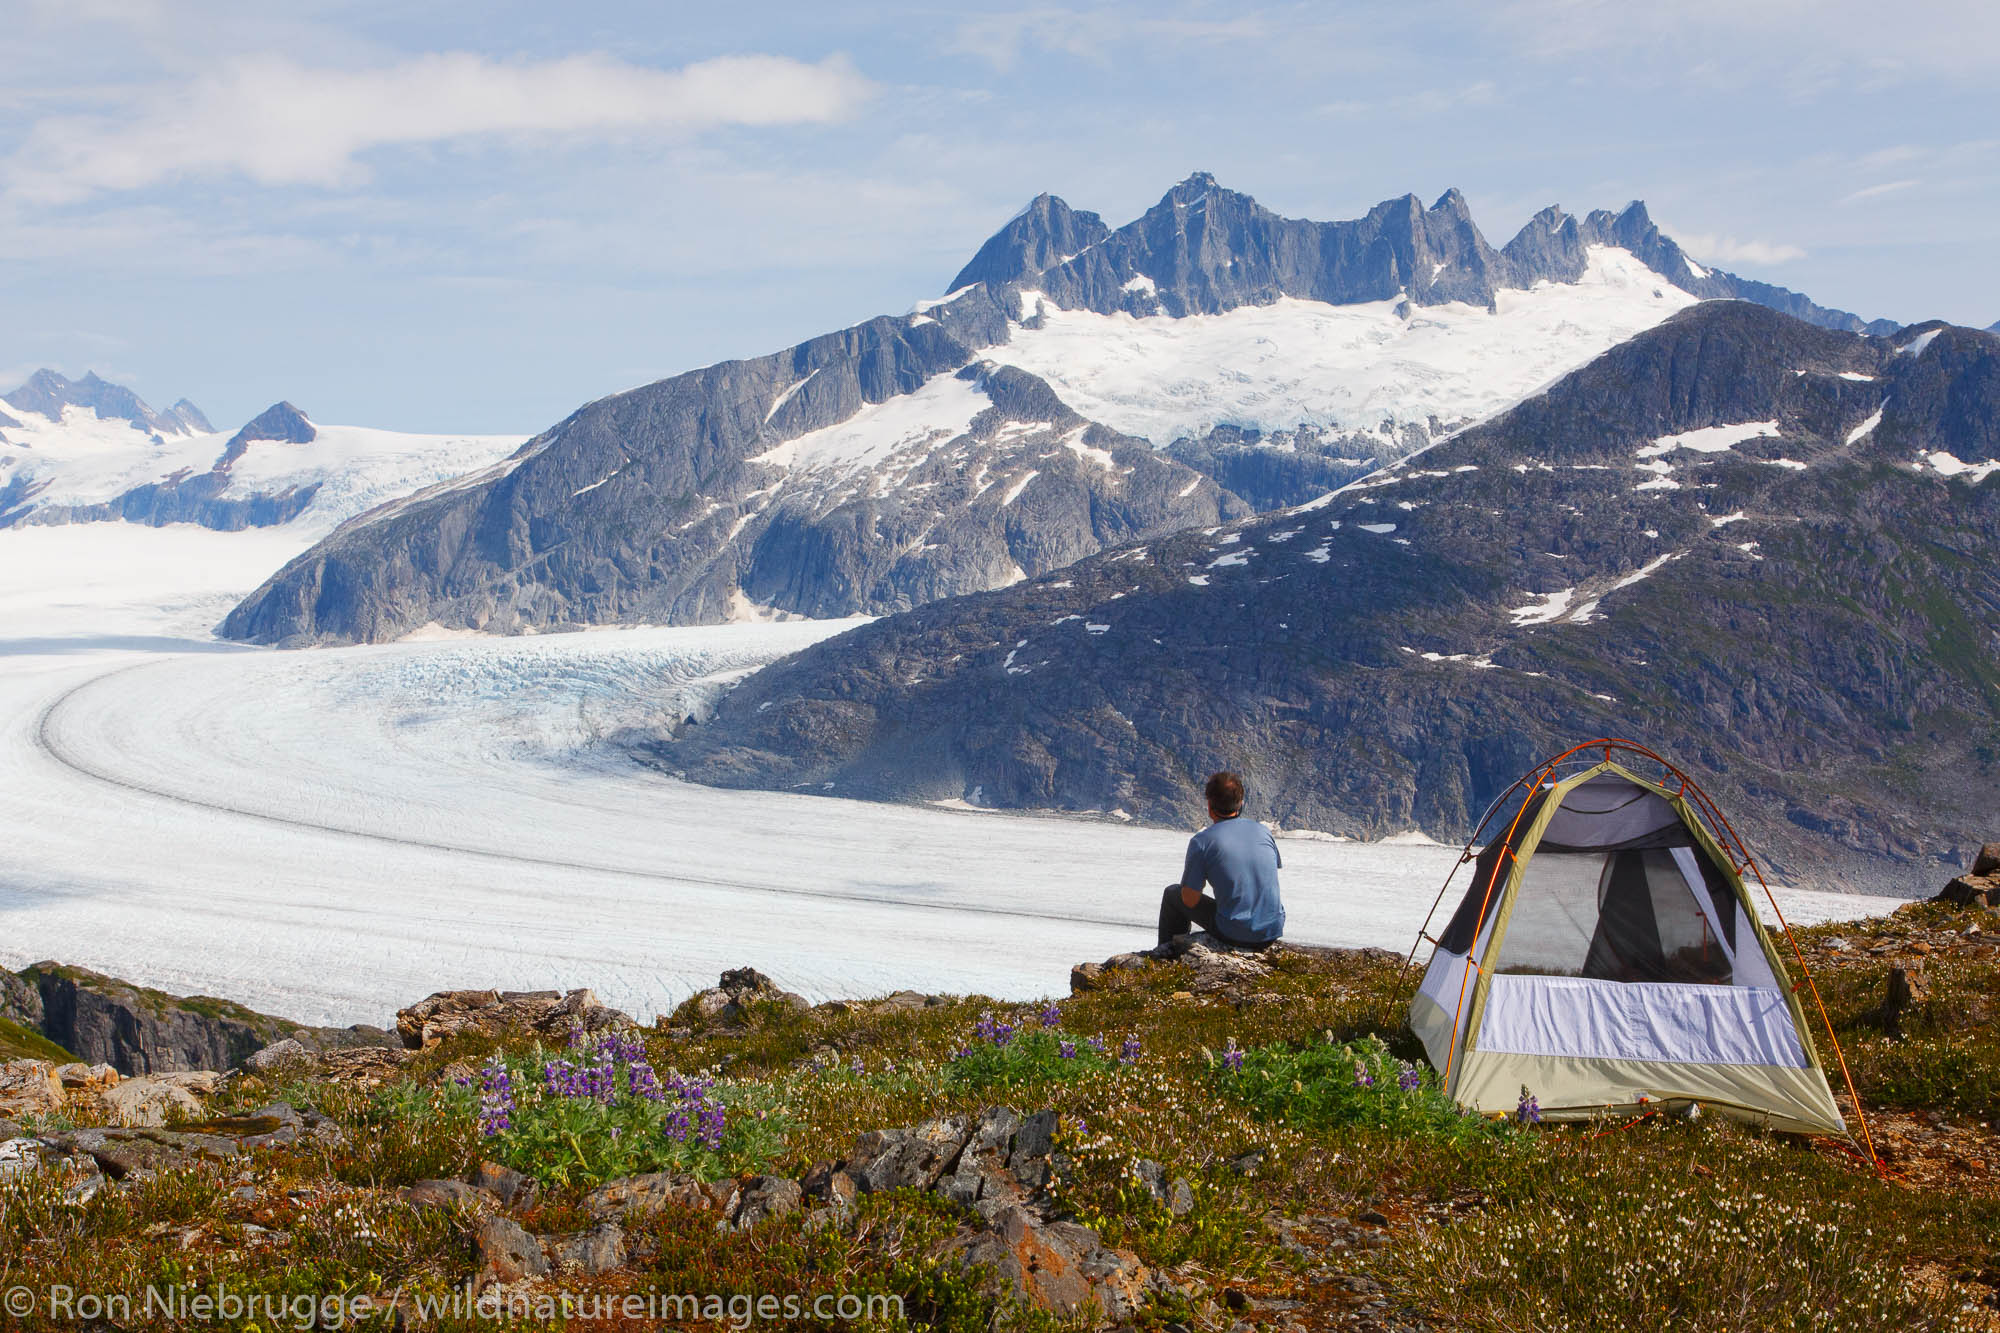 Camping on Mount Stroller White above the Mendenhall Glacier, Tongass National Forest, Alaska. (model released)